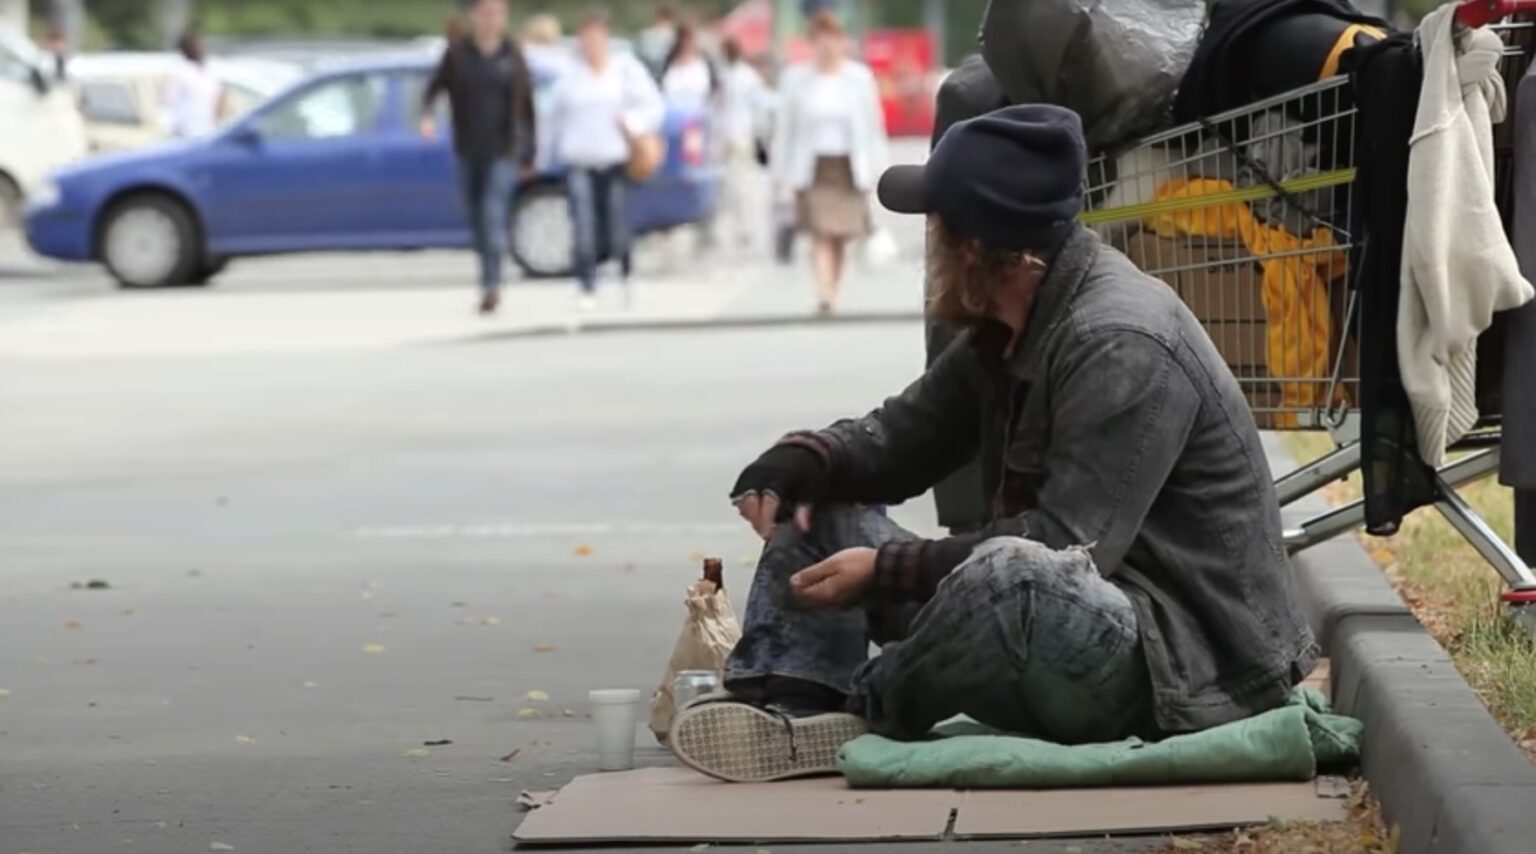 Report: Illegal immigrants are eligible for $15,600 stimulus check in NY, but homeless veterans are not